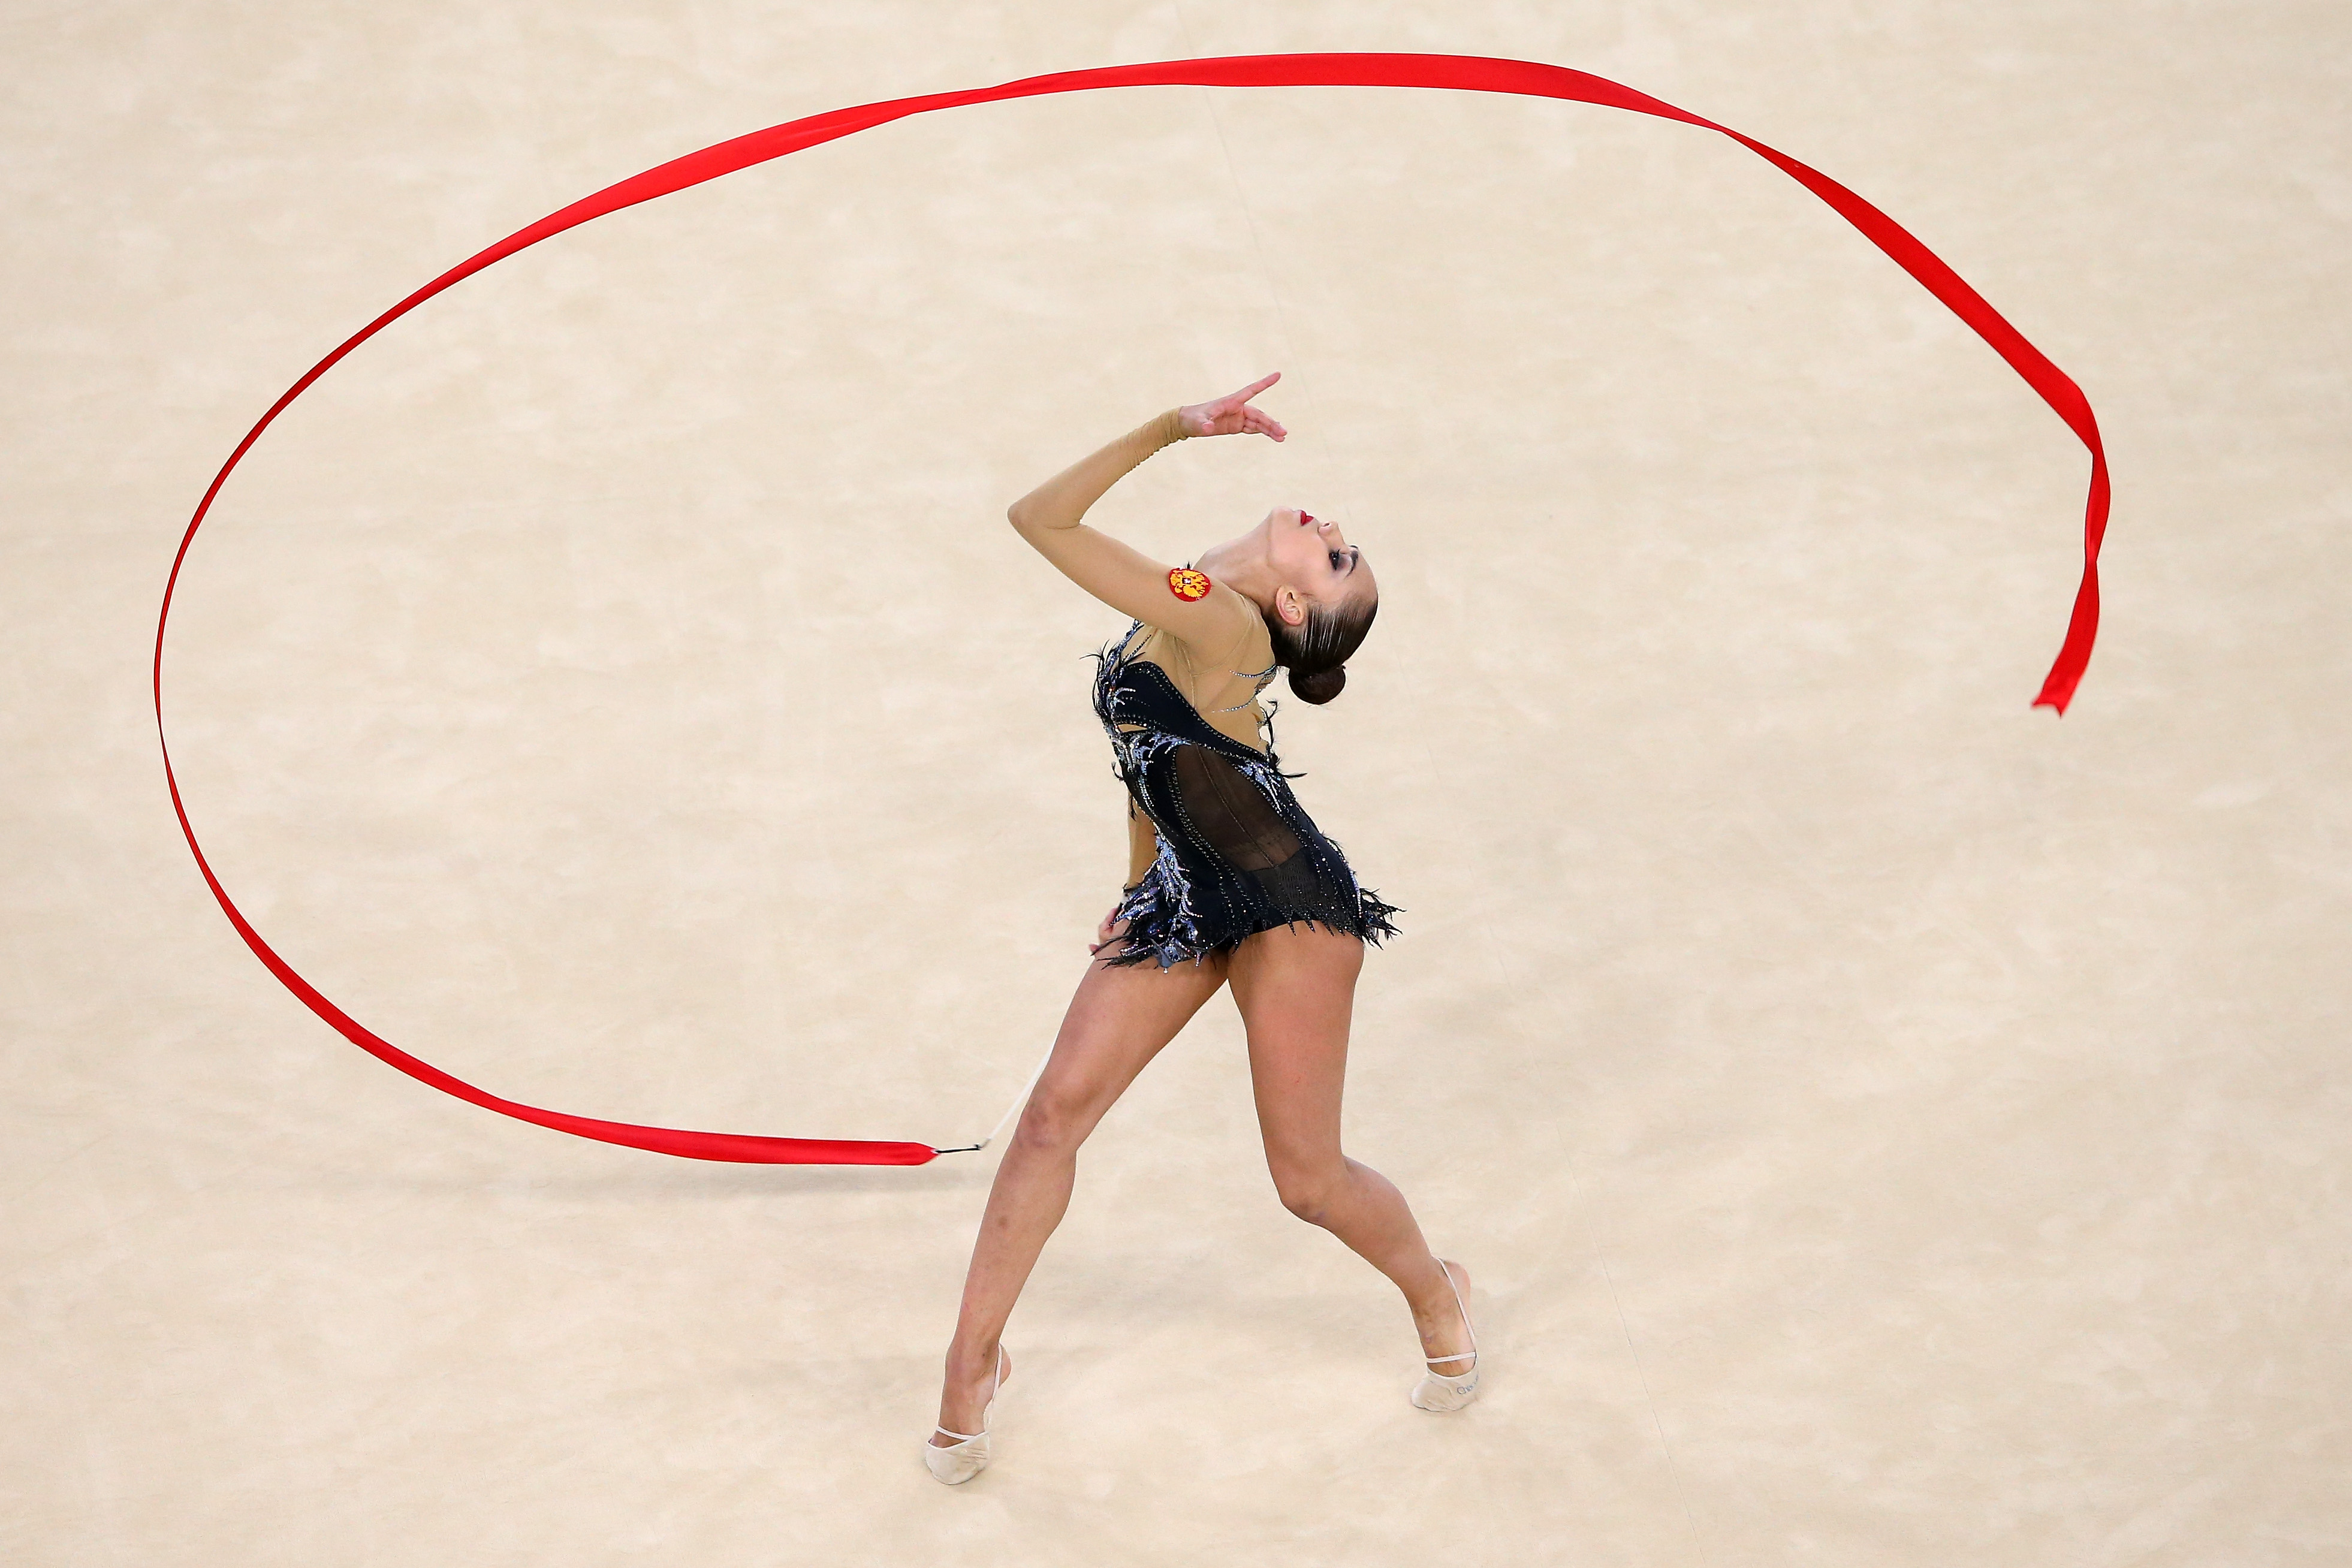 RIO DE JANEIRO, BRAZIL - AUGUST 20: Margarita Mamun of Russia competes during the Women's Individual All-Around Rhythmic Gymnastics Final on Day 15 of the Rio 2016 Olympic Games at the Rio Olympic Arena on August 20, 2016 in Rio de Janeiro, Brazil. (Photo by Alex Livesey/Getty Images)